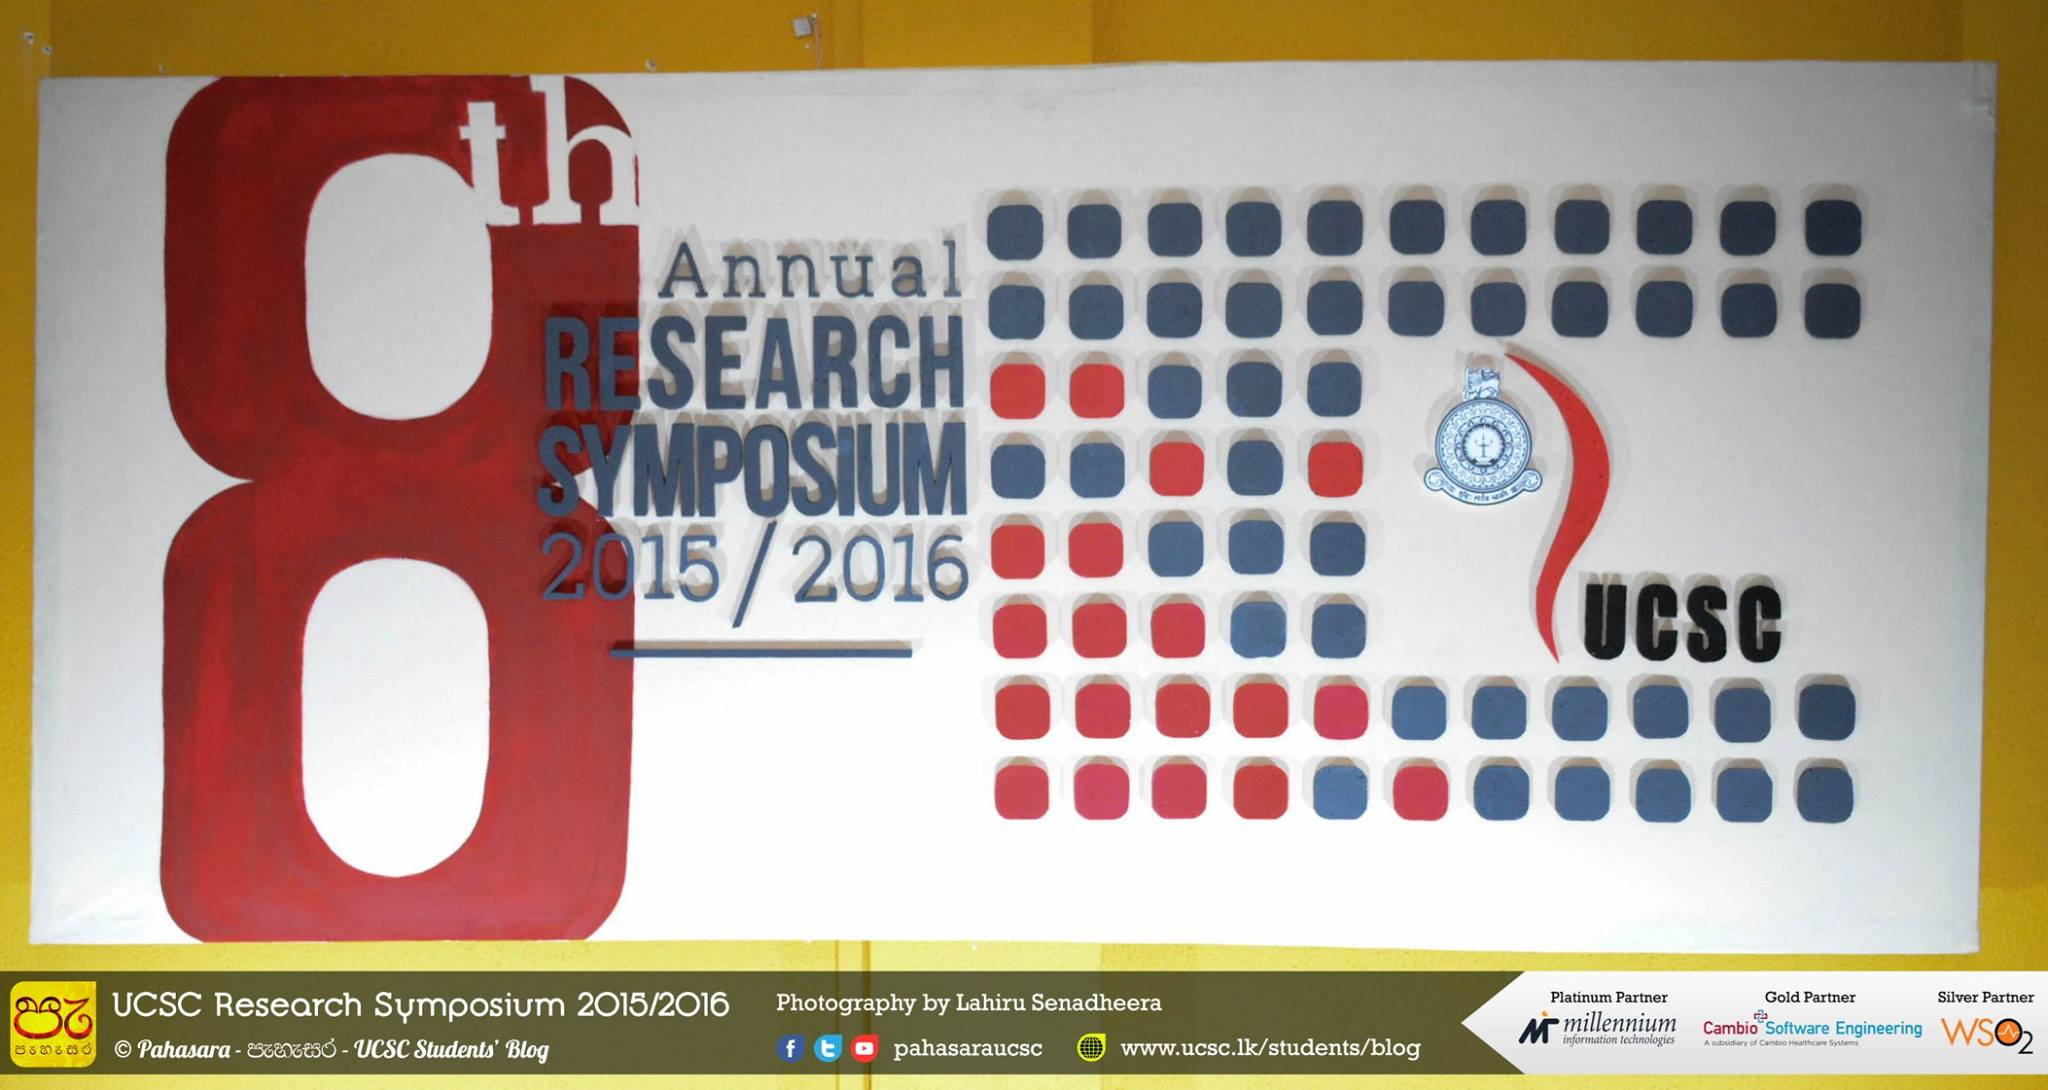 8th Annual Research Symposium – UCSC